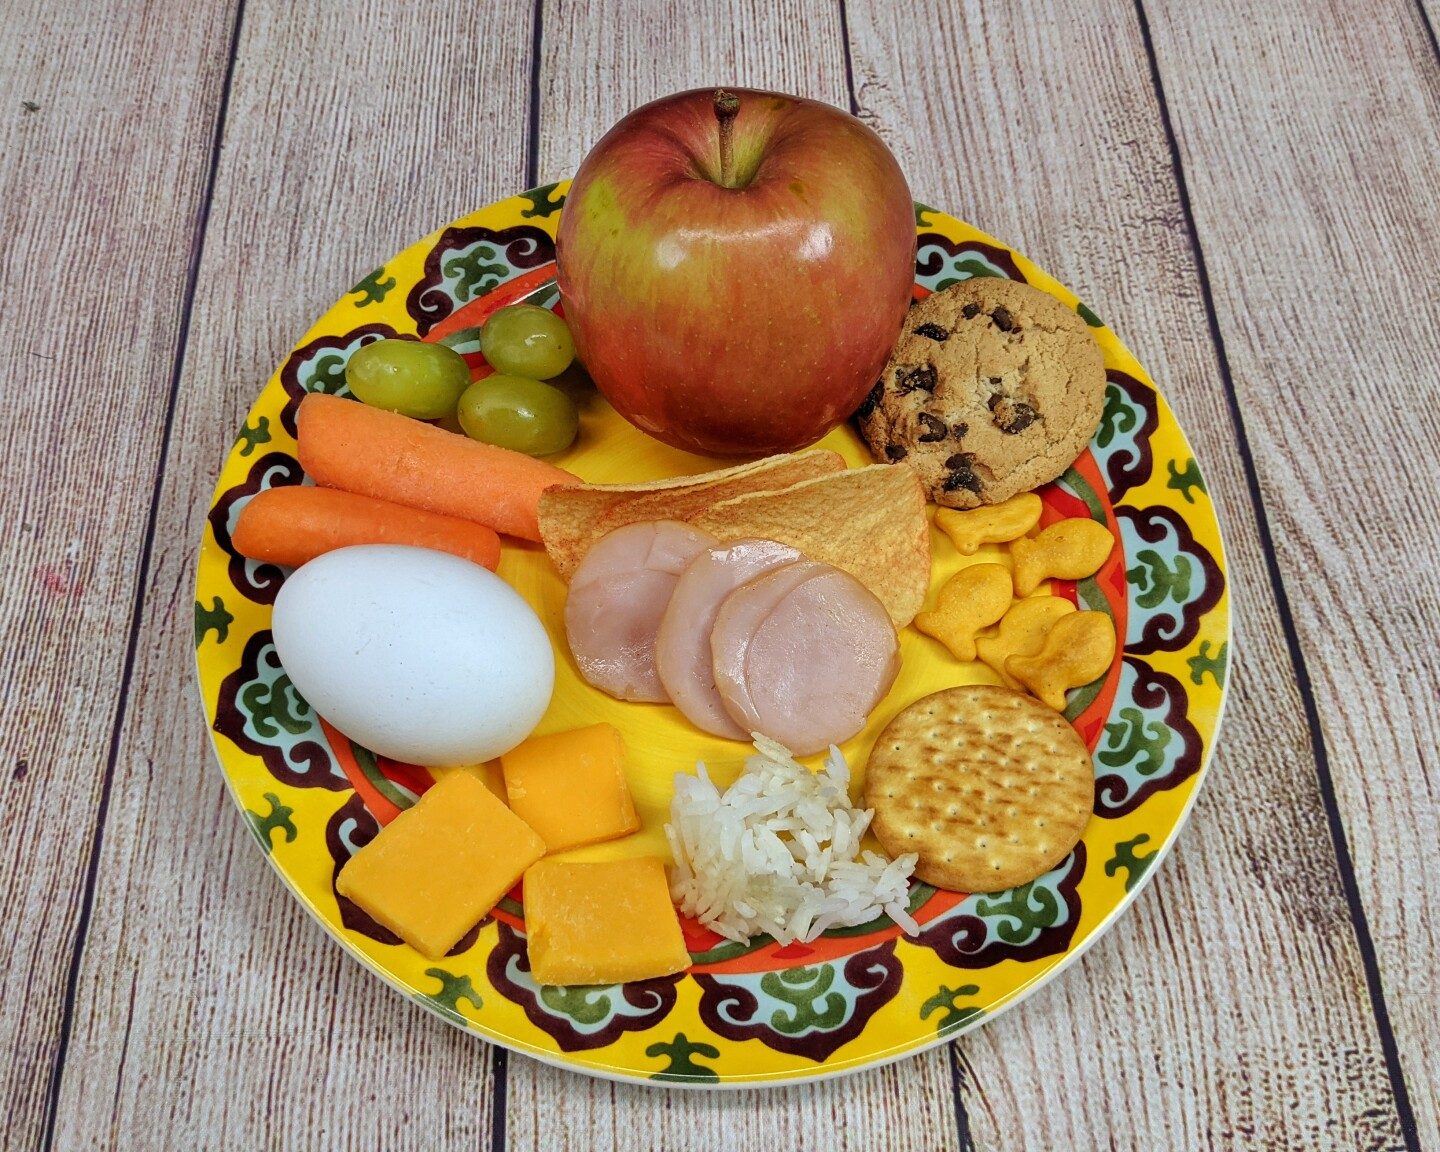 Snack items like  small crackers, apple slices and cheese squares are arranged on a plate